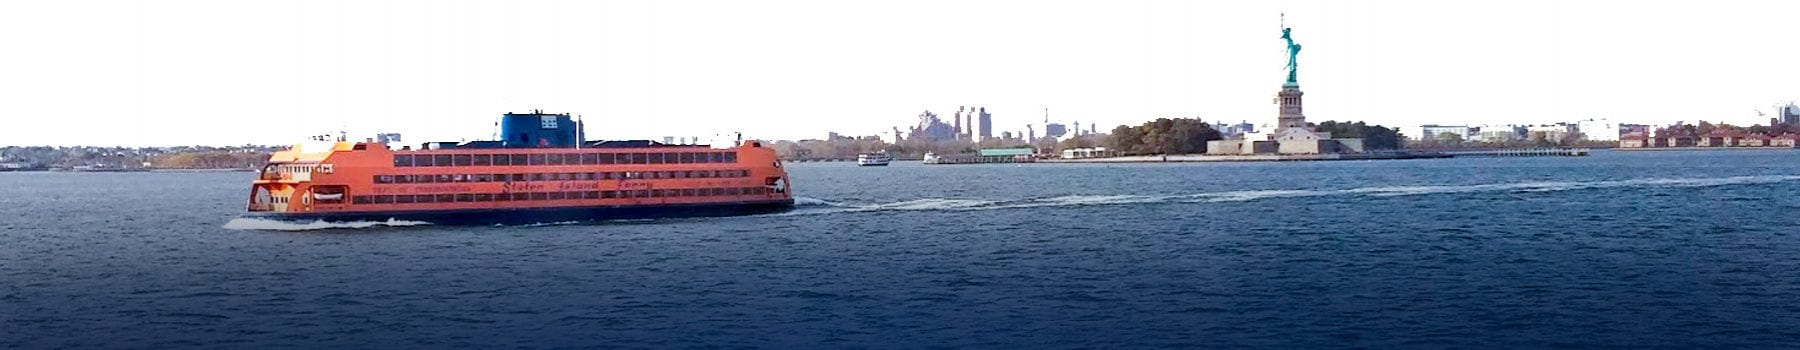 Staten Island Ferry with Statue of Liberty in the background